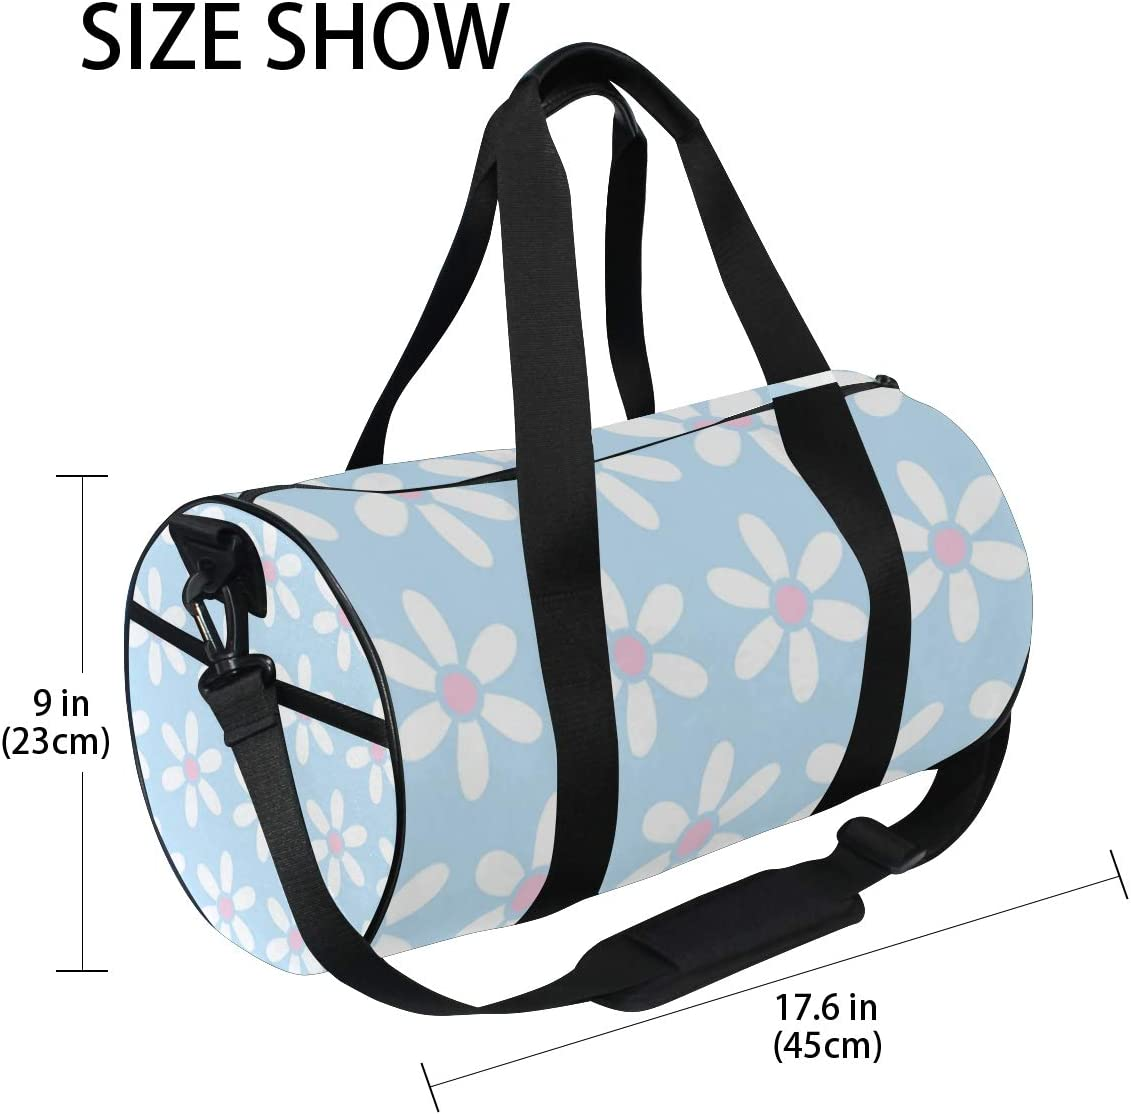 MALPLENA Adorable Daisy Pattern Drum gym duffel bag women Travel Bag